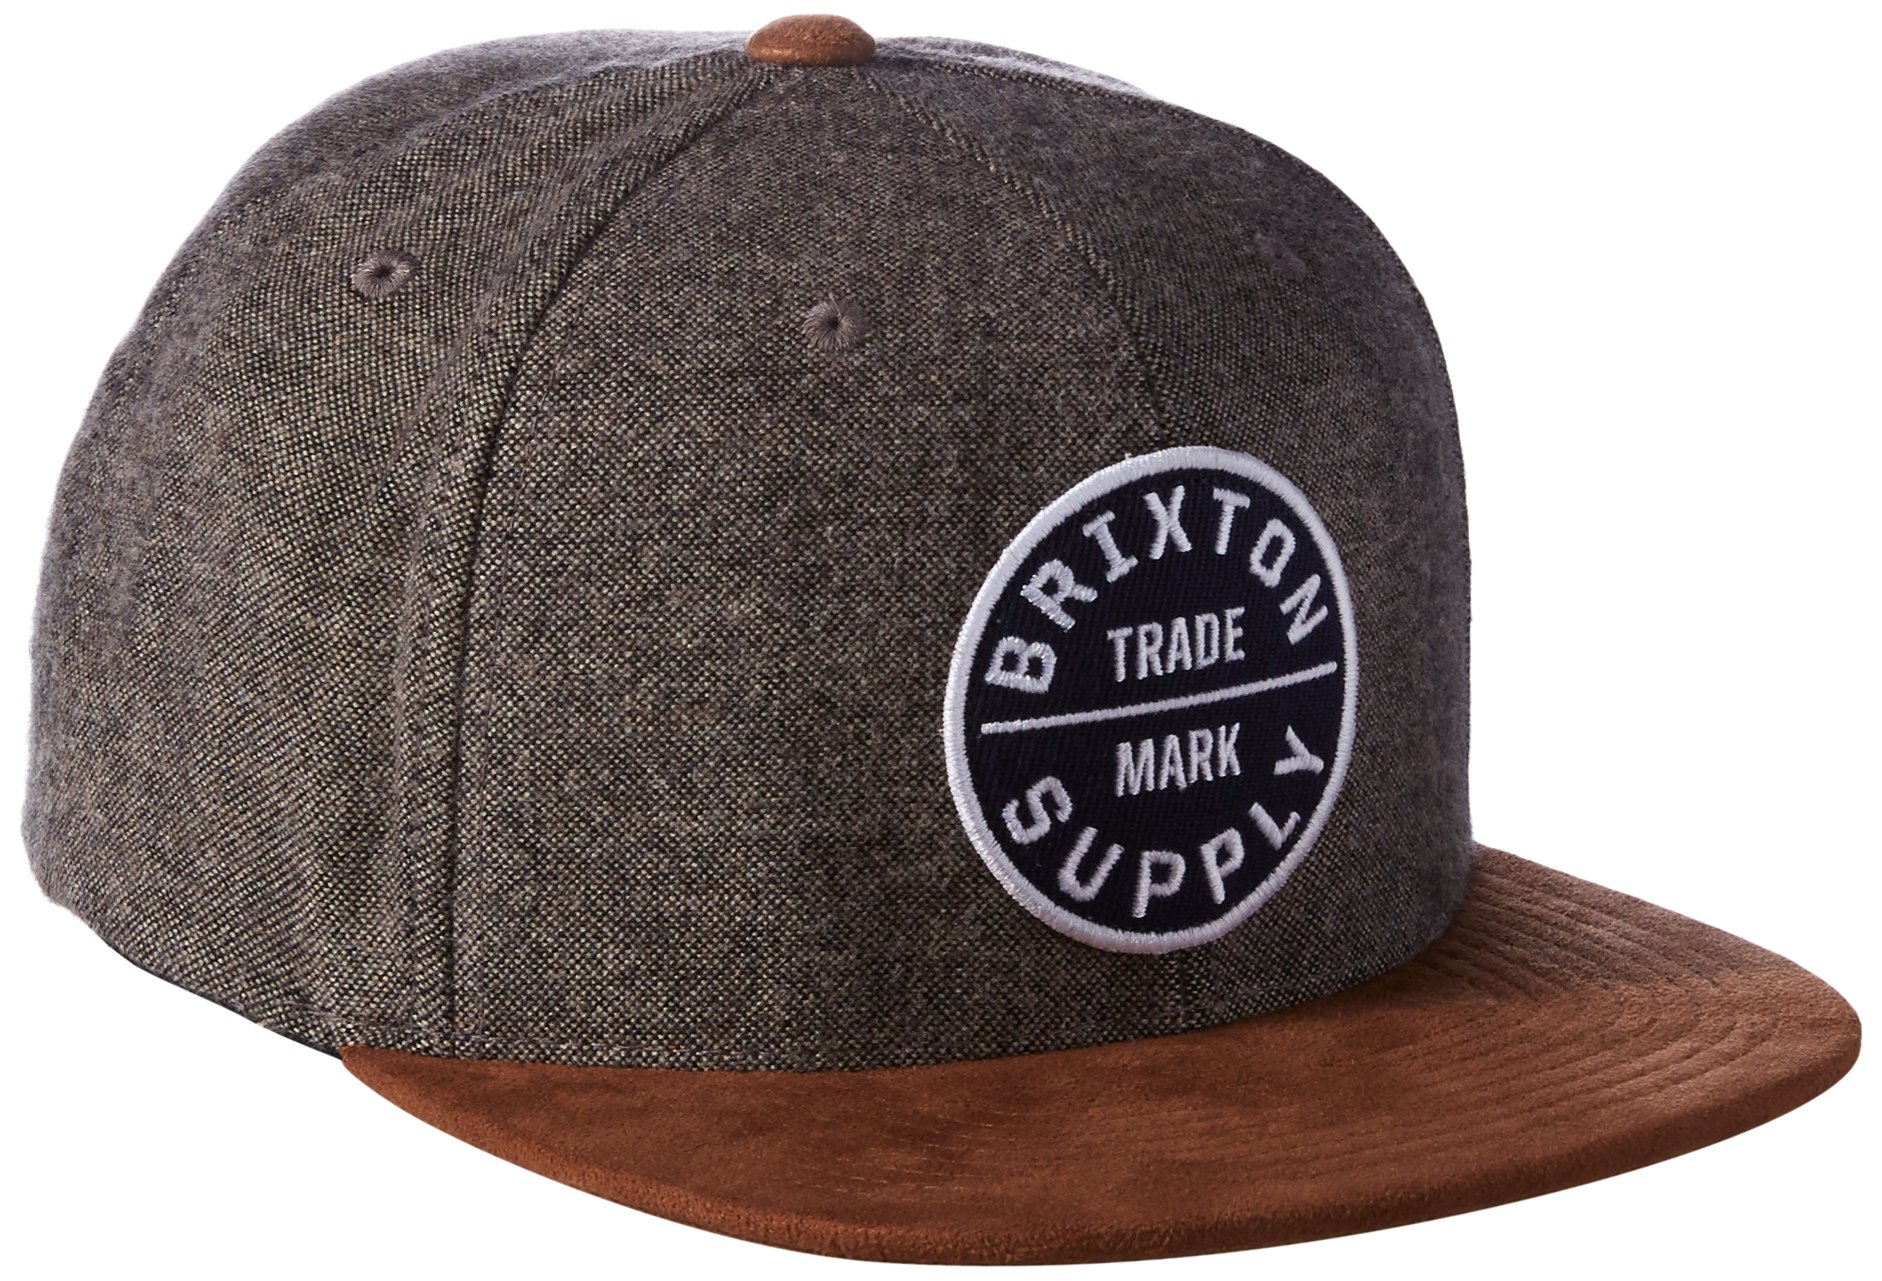 Brixton Men's Oath III Medium Profile Adjustable Snapback Hat, Grey/Copper, One Size